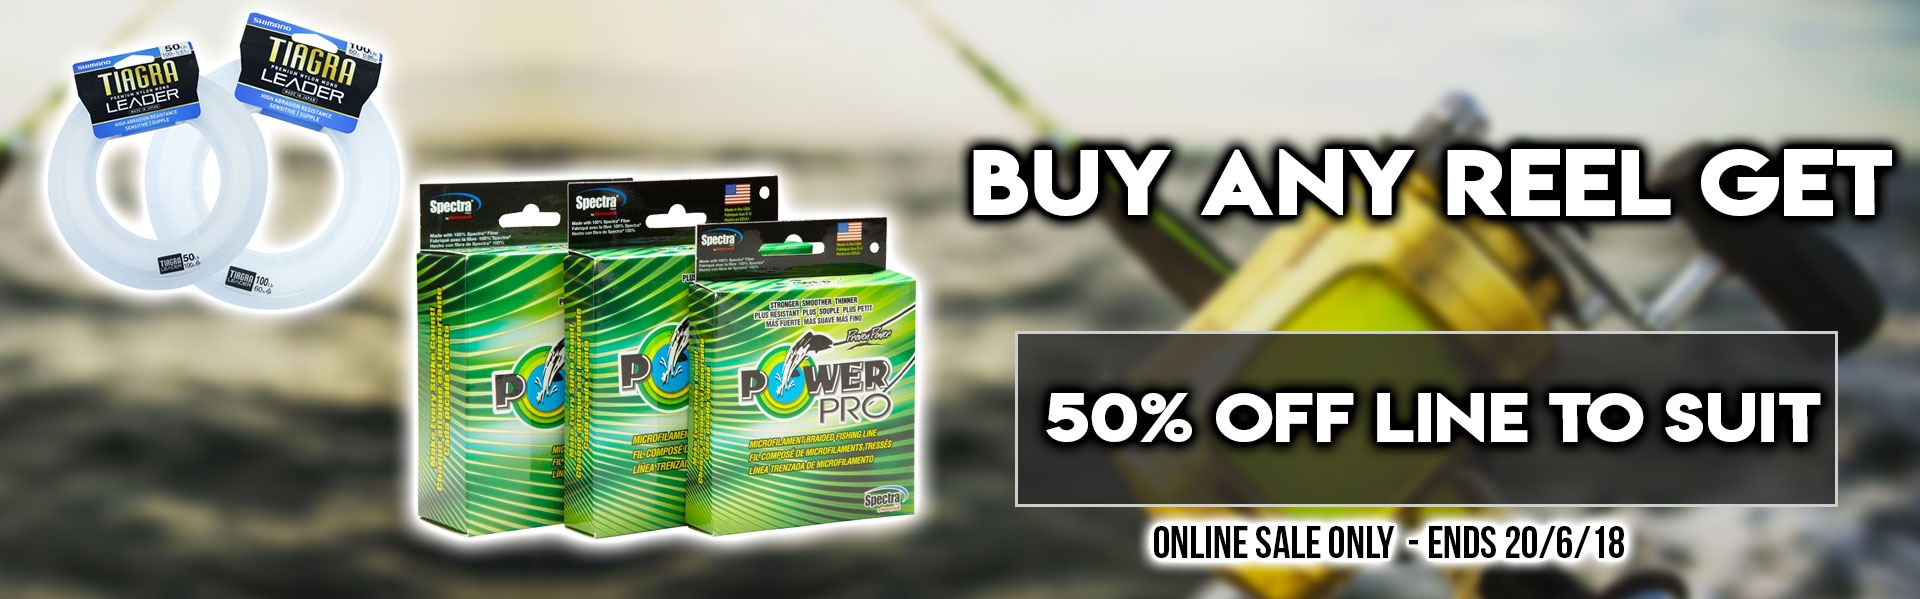 Buy any reel and get 50% off line